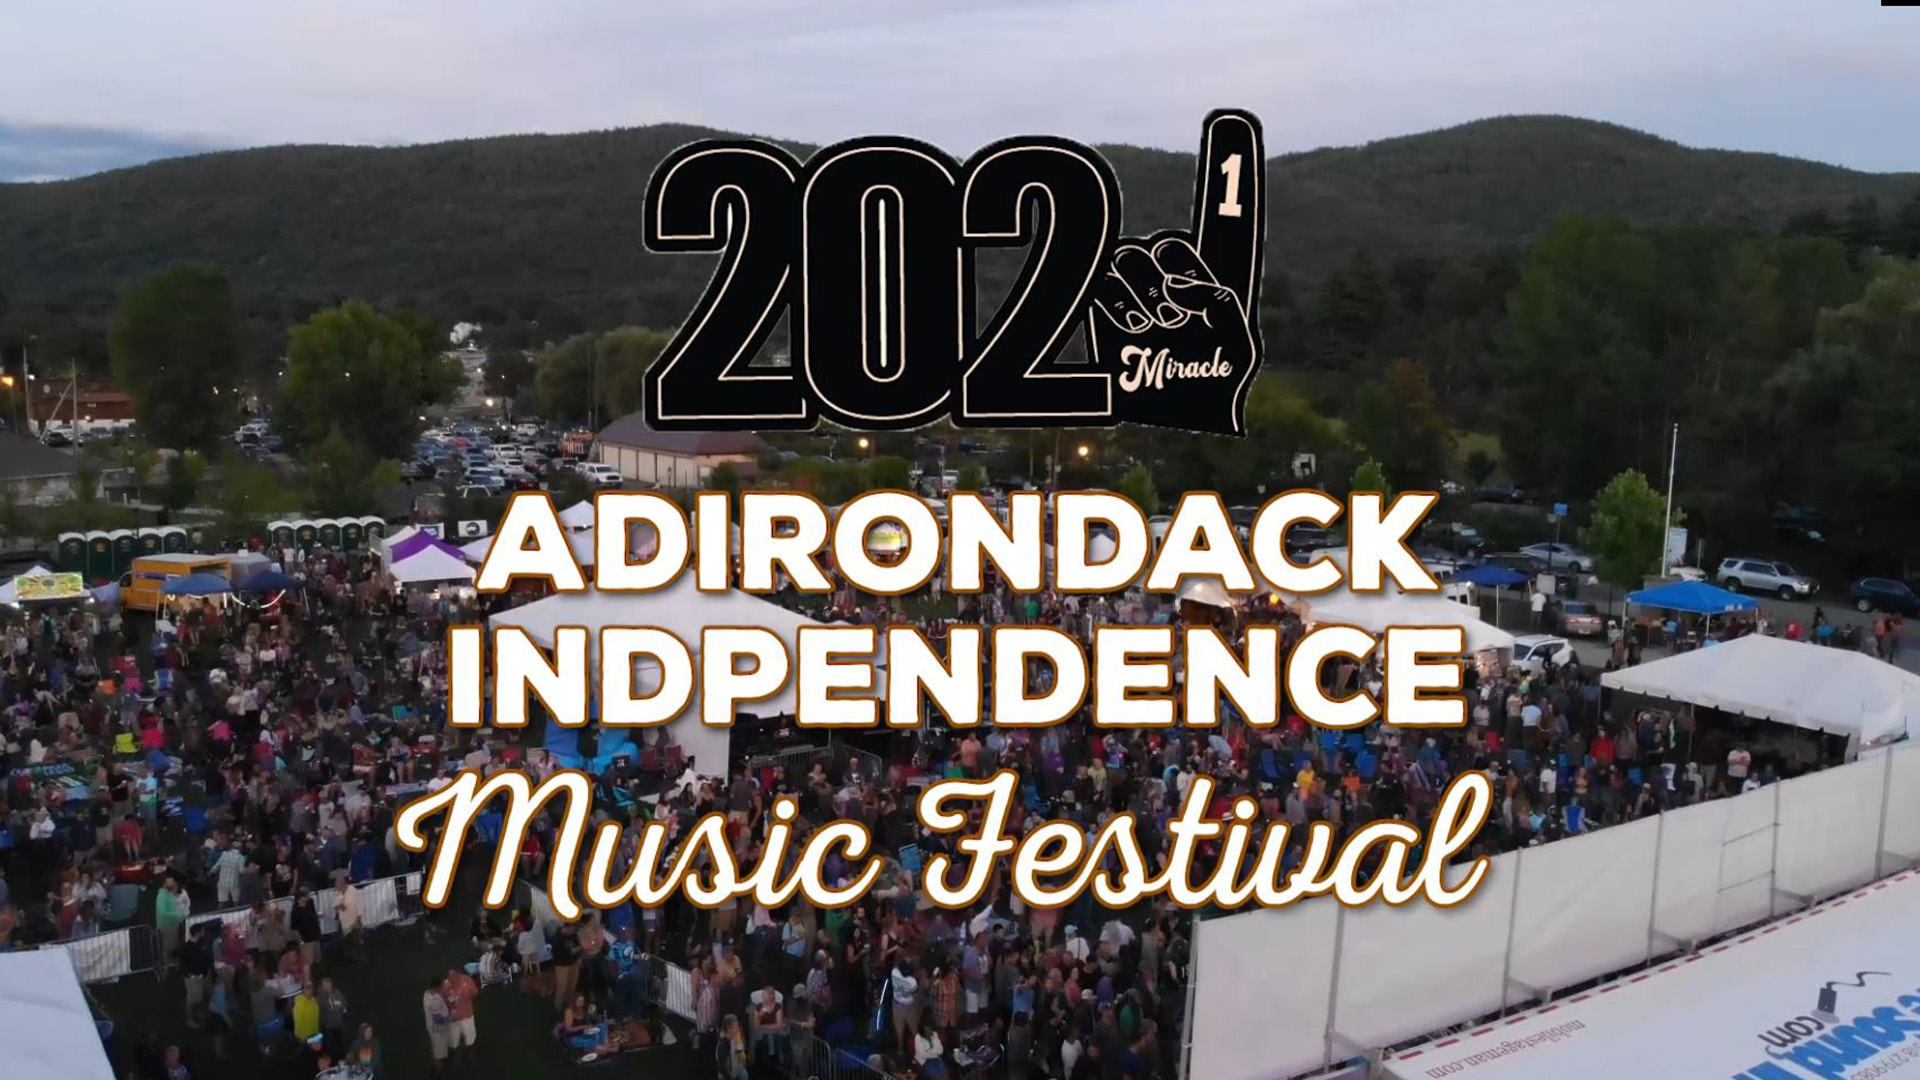 moe. and Twiddle Set To Headline the 2021 Adirondack Independence Music Festival in Lake George, NY